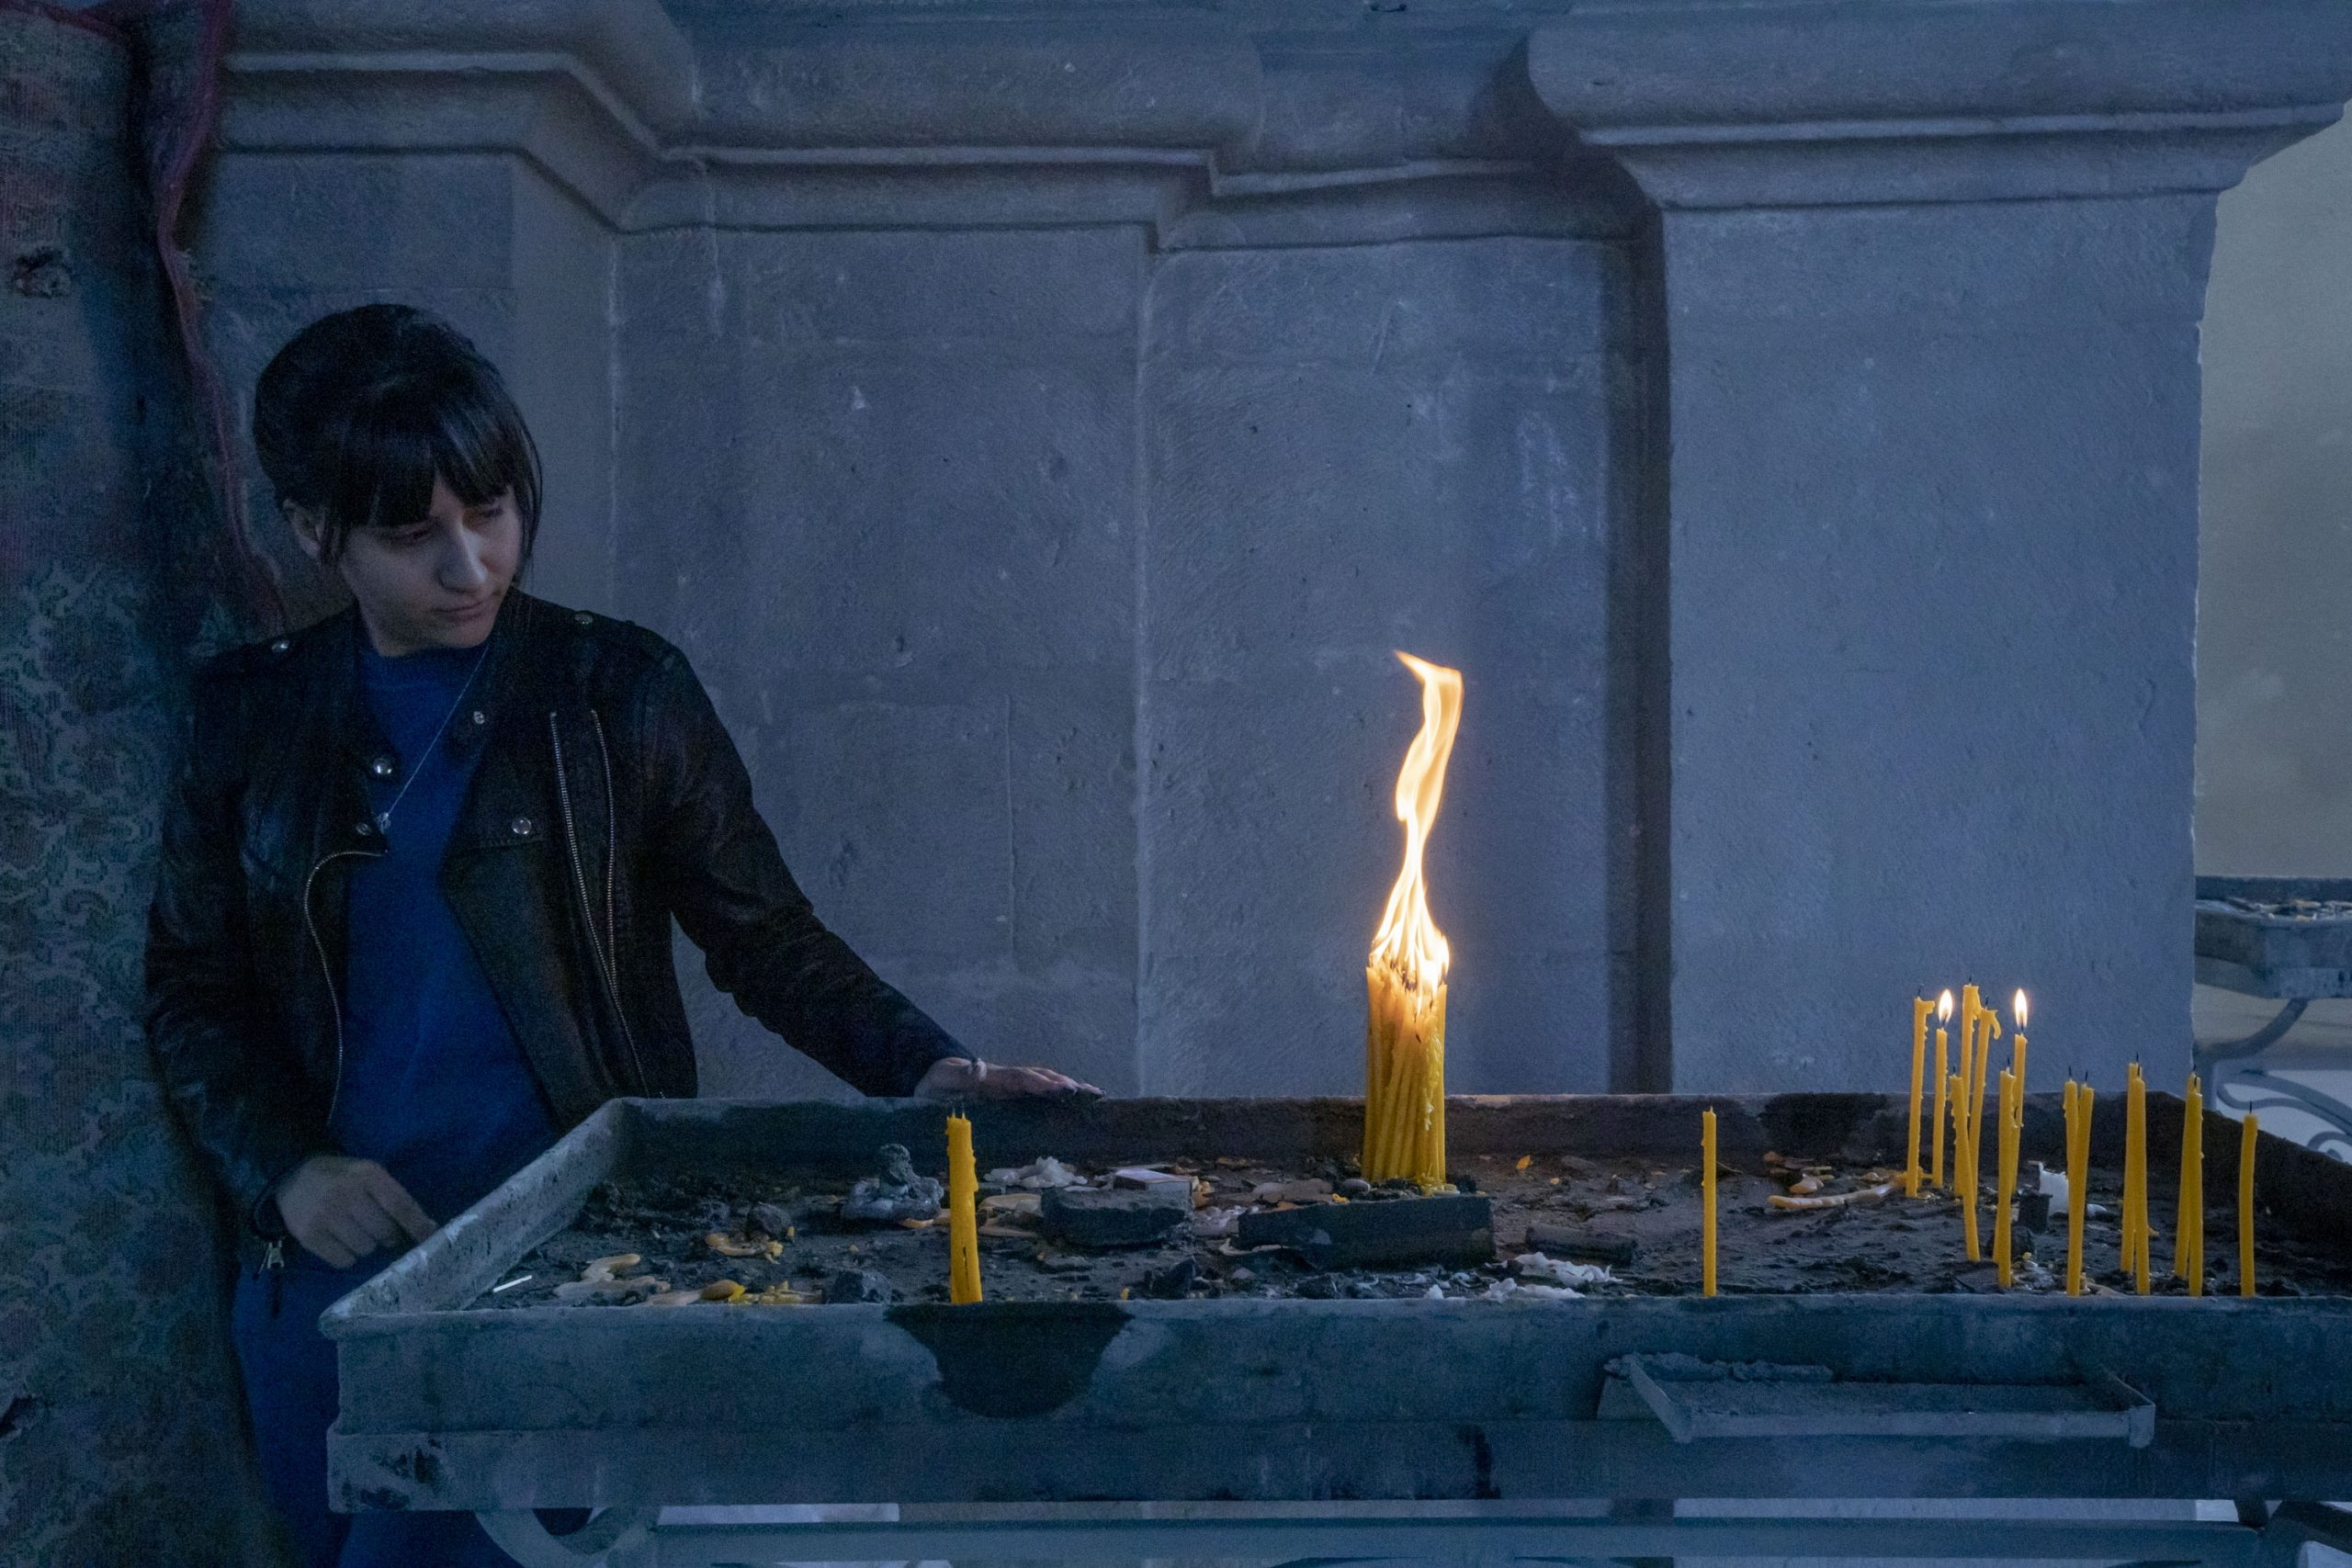 A woman looks at 31 candles she has lit for a missing soldier in Ghazanchetsots Cathedral in Shushi, Nagorno-Karabakh, on October 16, 2020. She notes that she lit as many candles as is his age. The cathedral was shelled twice on October 8, 2020. The town, which Armenians call Shushi and Azerbaijanis call Shusha, came under Azerbaijan's control by the end of the Nagorno-Karabakh war.